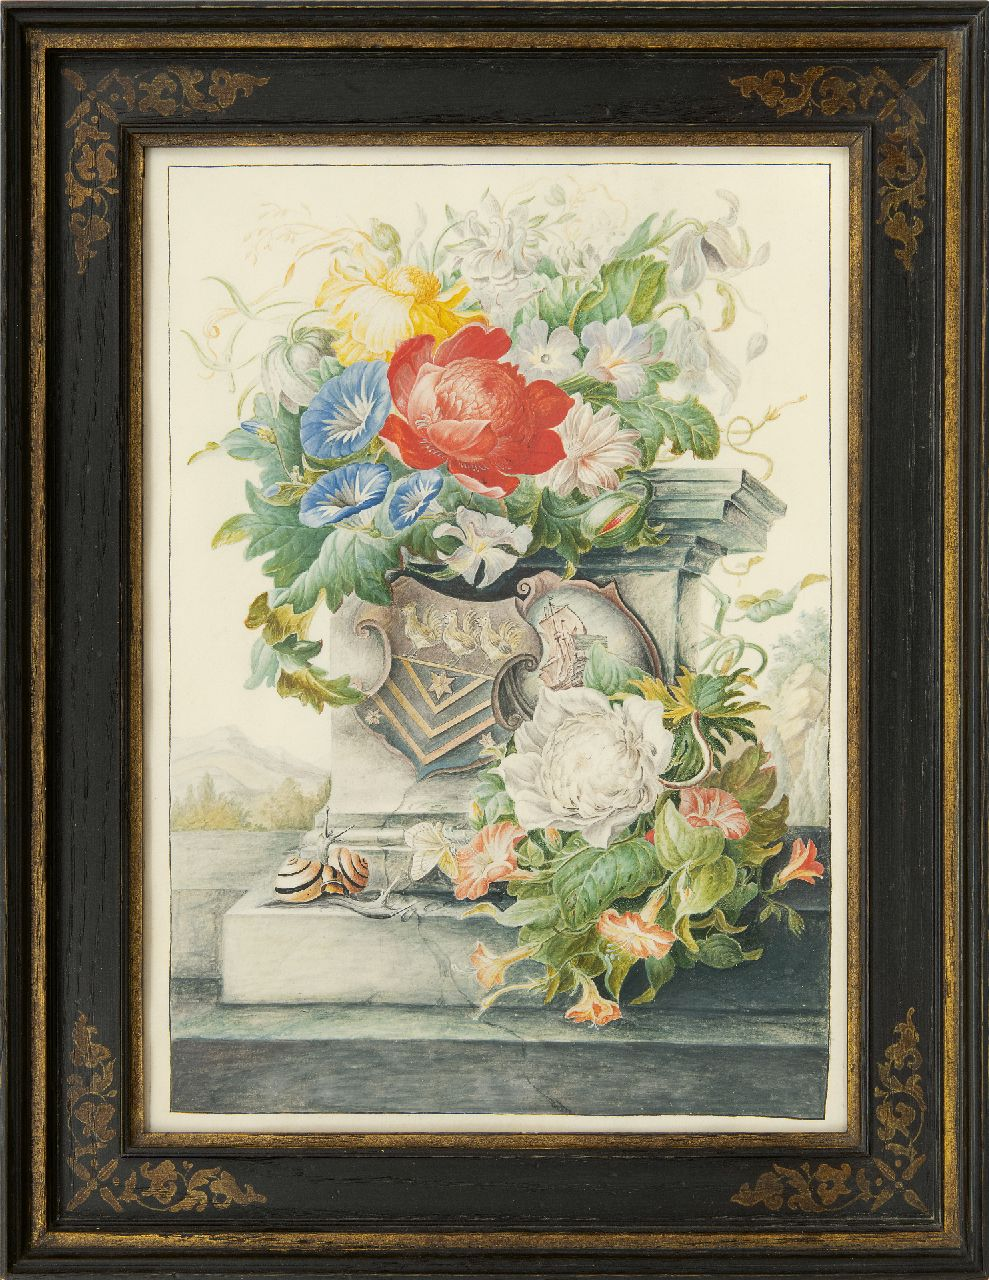 Henstenburgh H.  | Herman Henstenburgh | Watercolours and drawings offered for sale | A flower still life with a column and coat of arms, watercolour on parchment on paper 36.6 x 25.3 cm